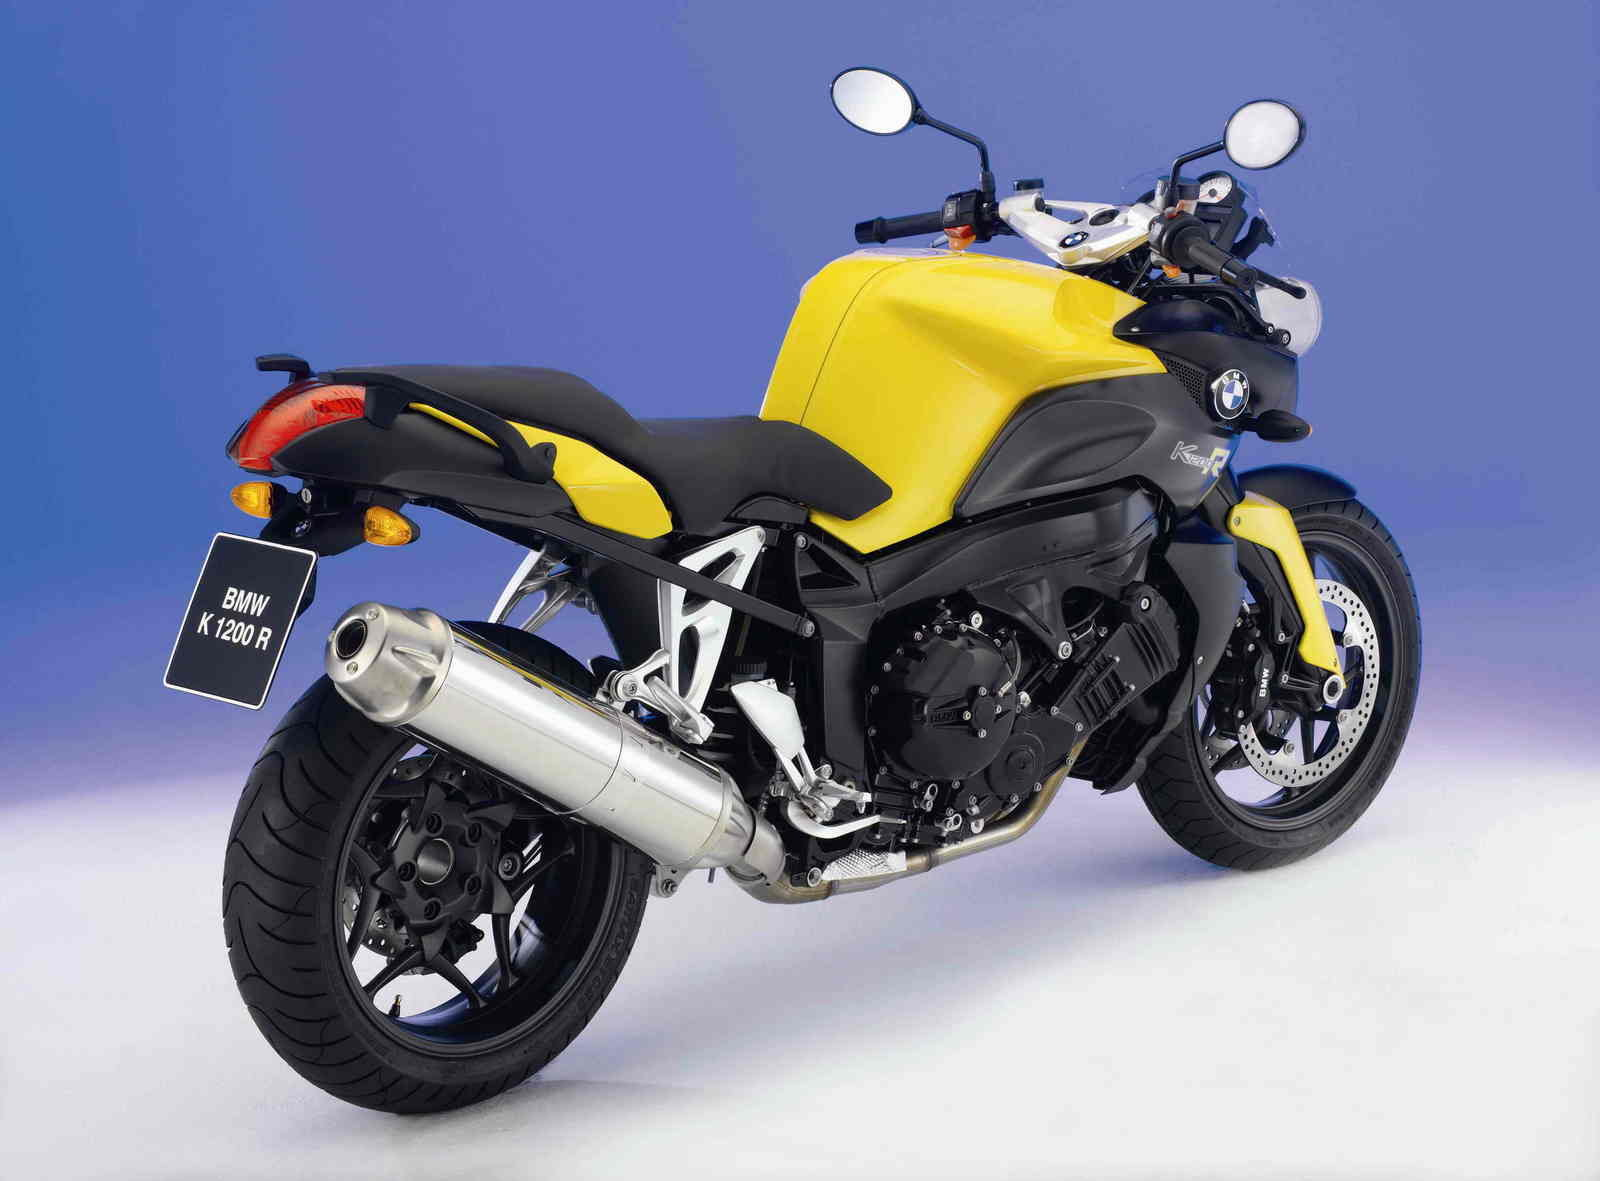 2006 bmw k 1200 r picture 161628 motorcycle review. Black Bedroom Furniture Sets. Home Design Ideas